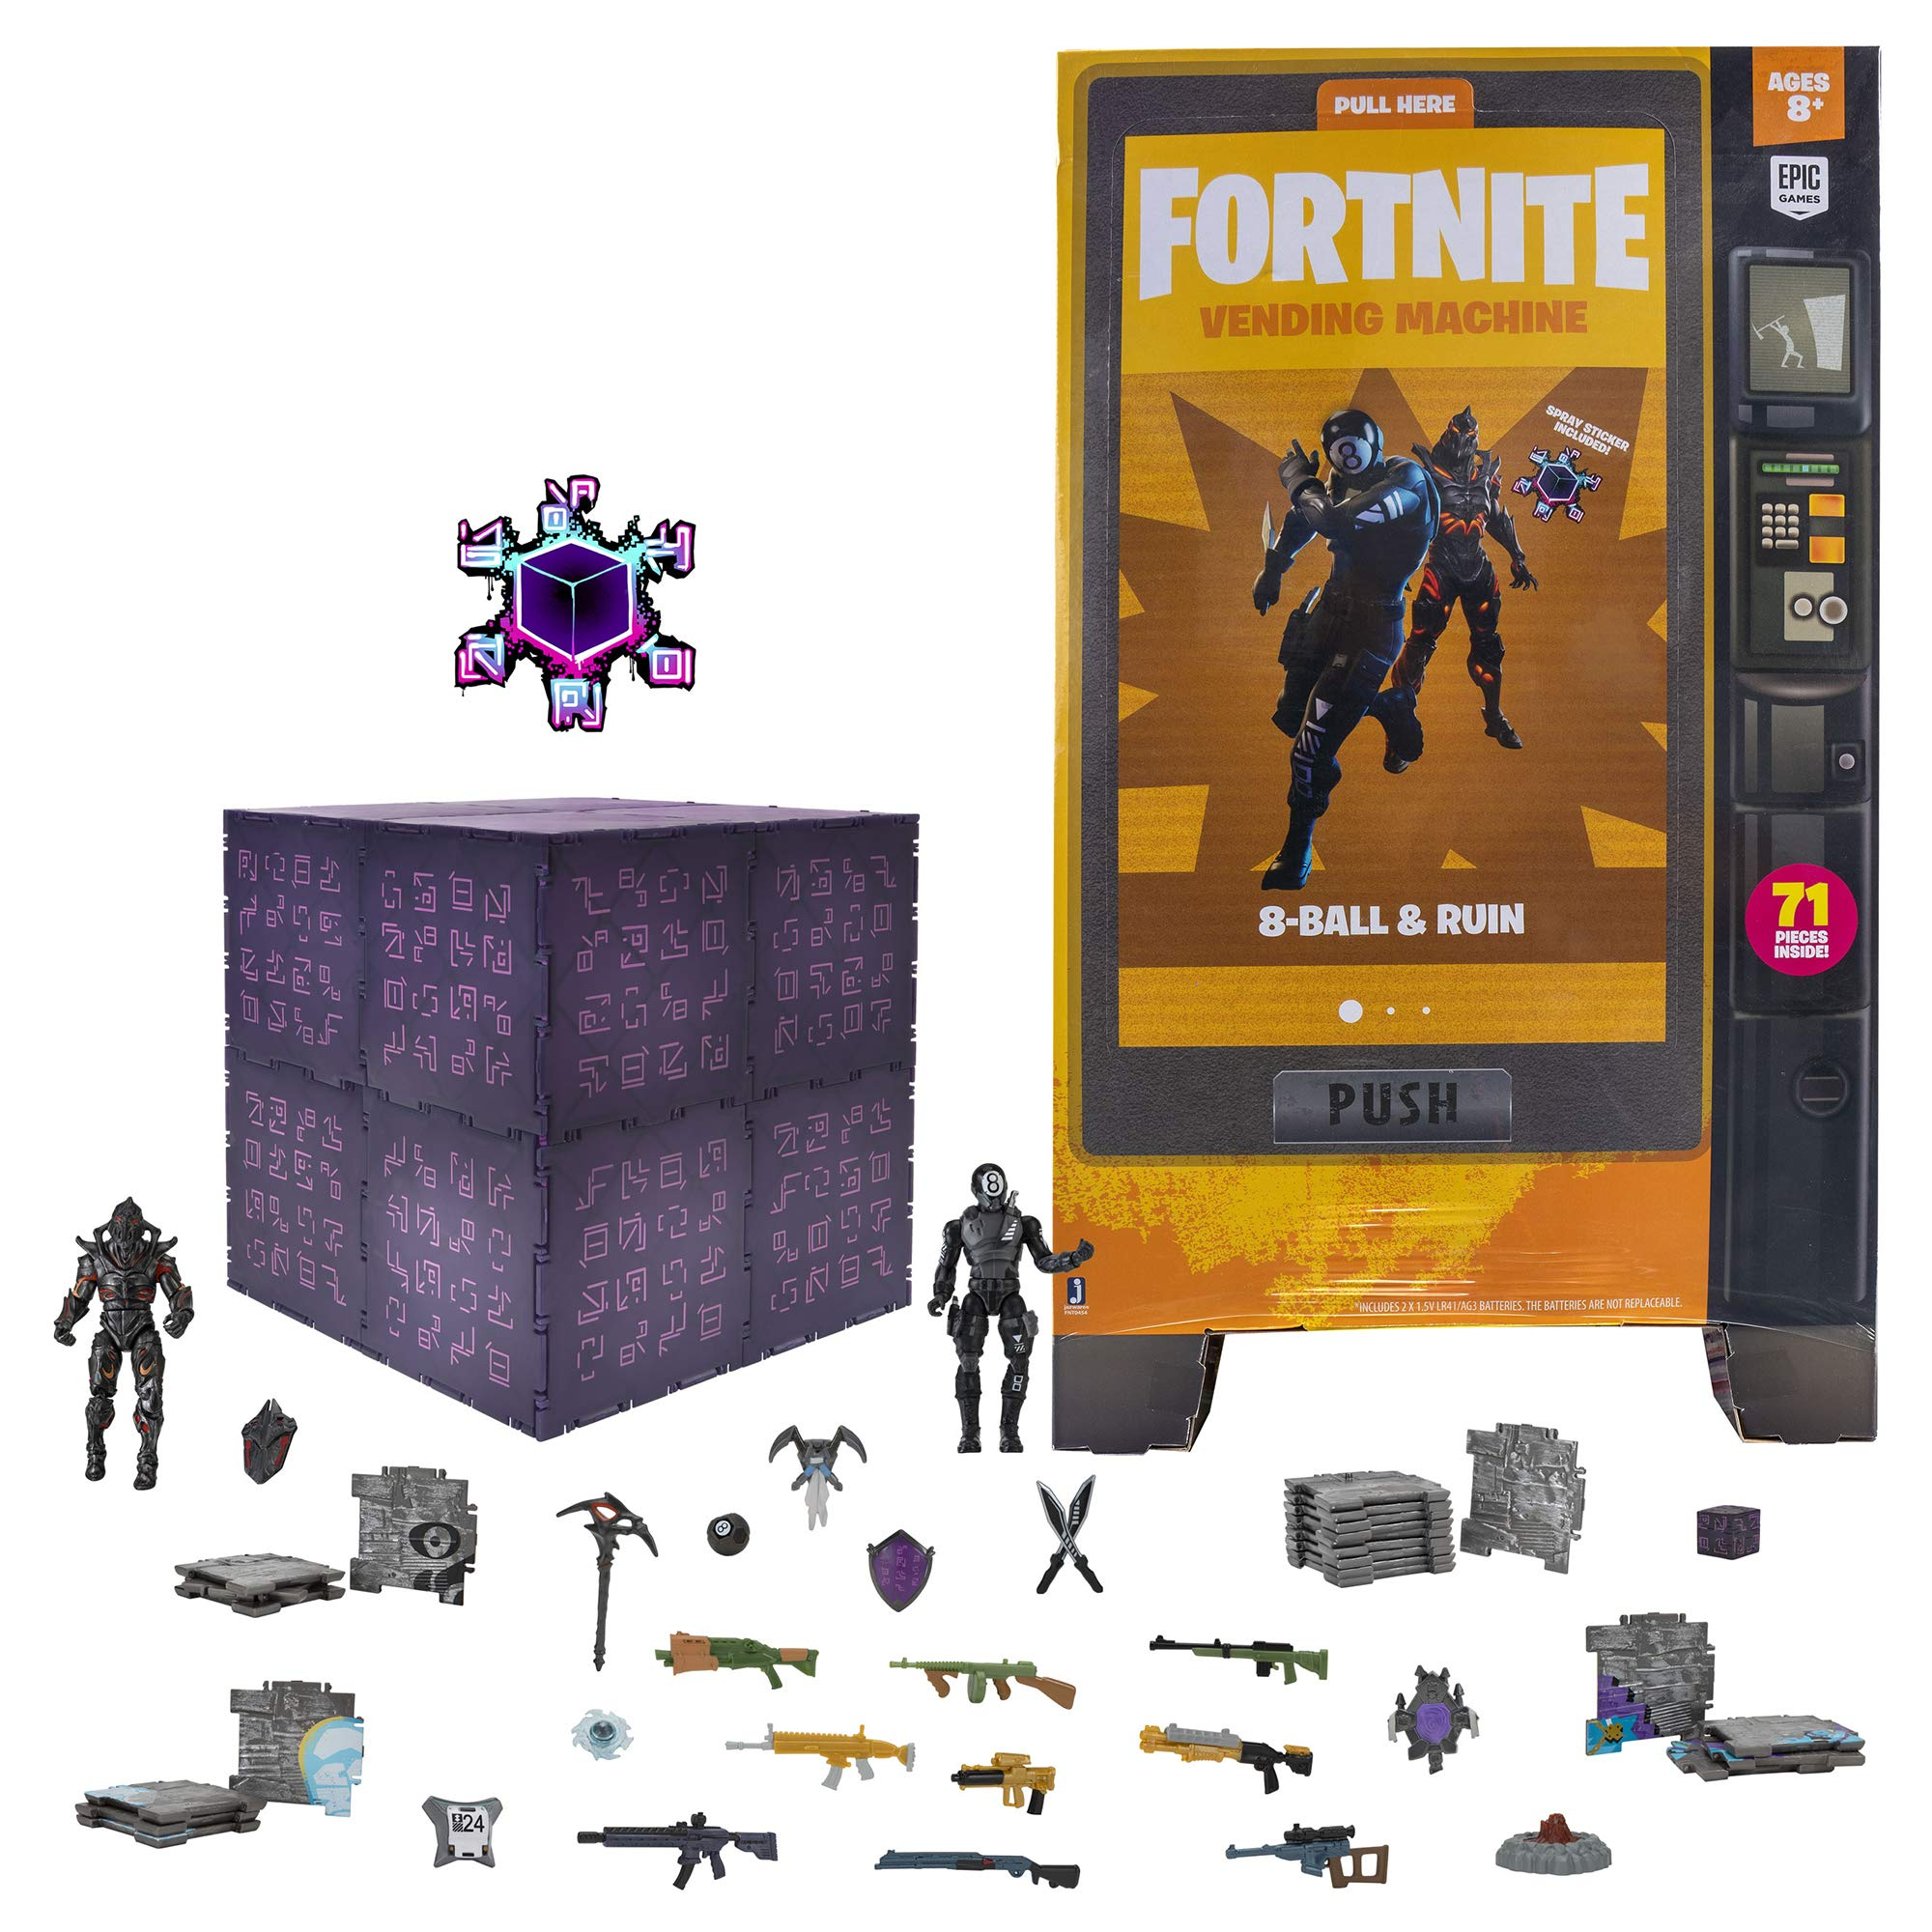 Fortnite Large Vending Machine, 2 Figure Pack - Features Ruin and 8-Ball 4 Inch Collectible Action Figures - Includes 24 'The Cube' Pieces, 10 Weapons, 8 Back Bling, 3 Harvesting Tools, and More